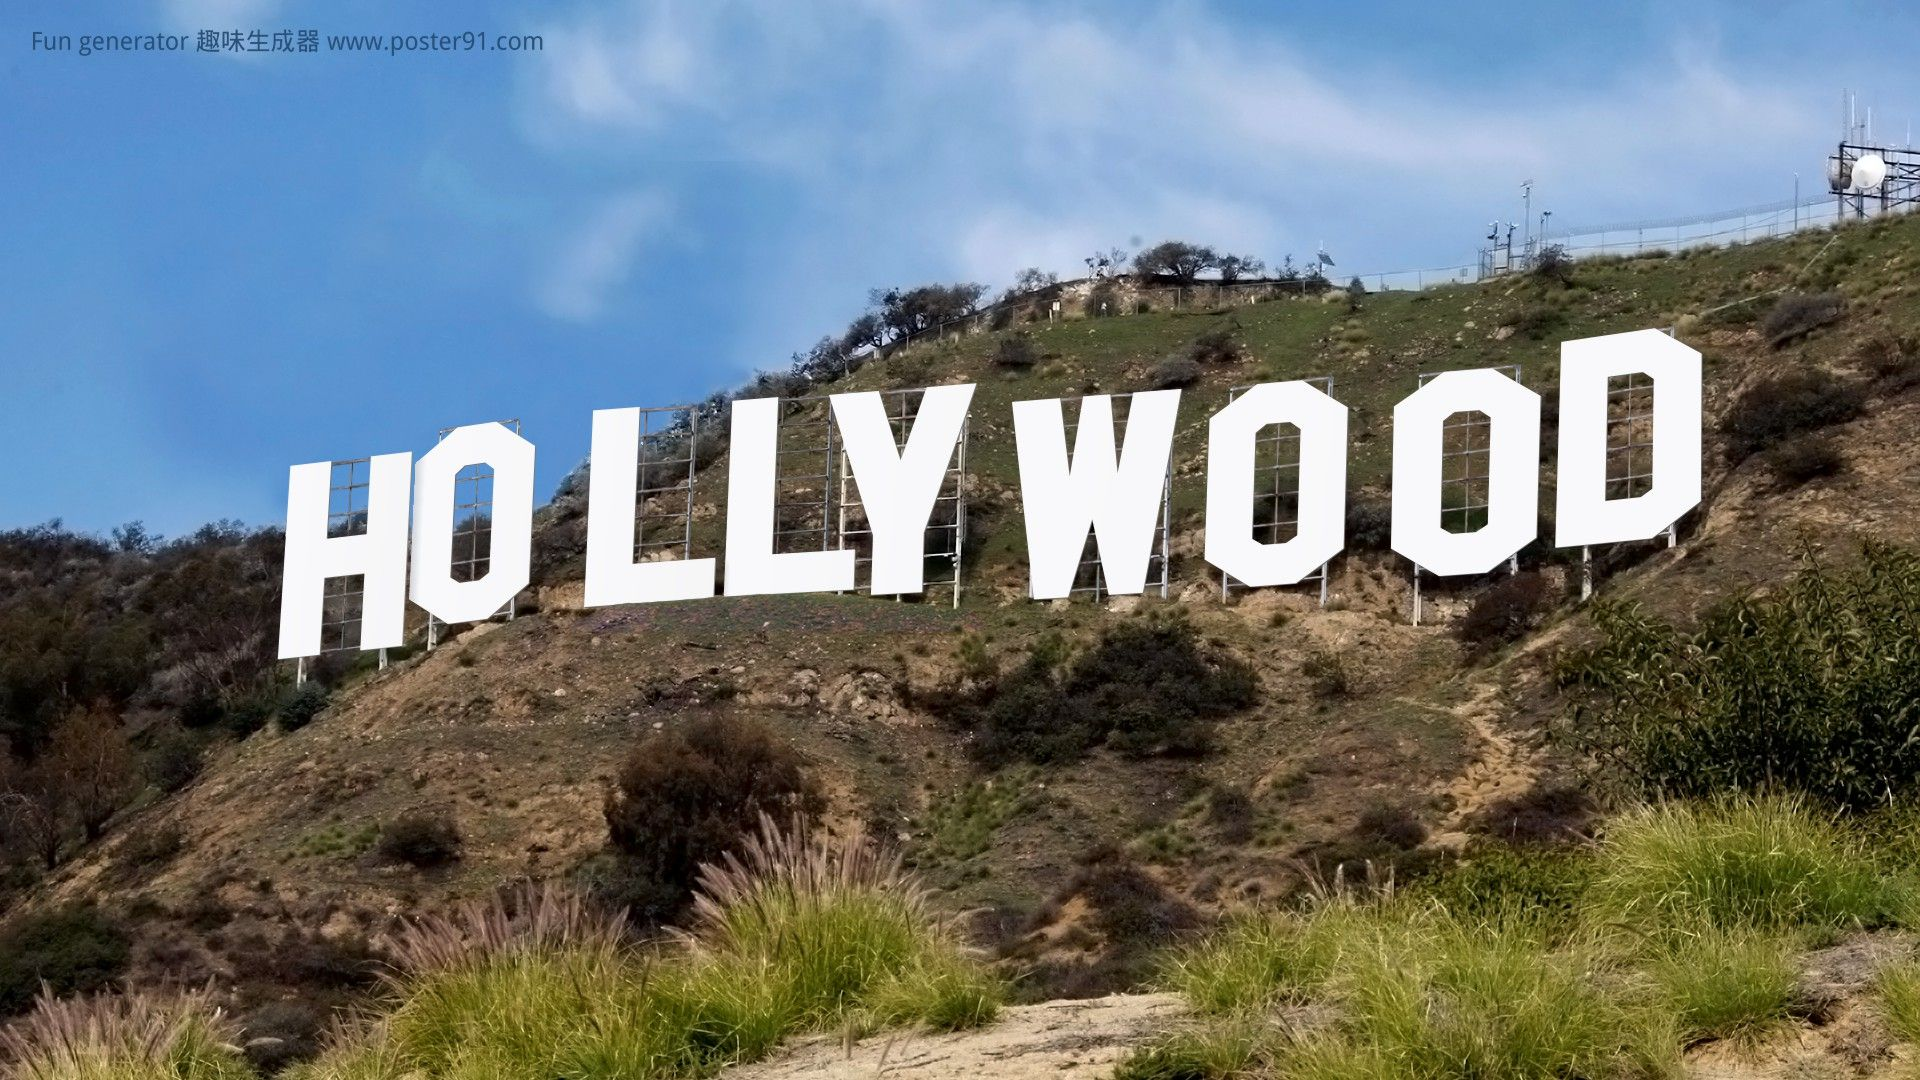 Hollywood sign generator We believe this is the best one